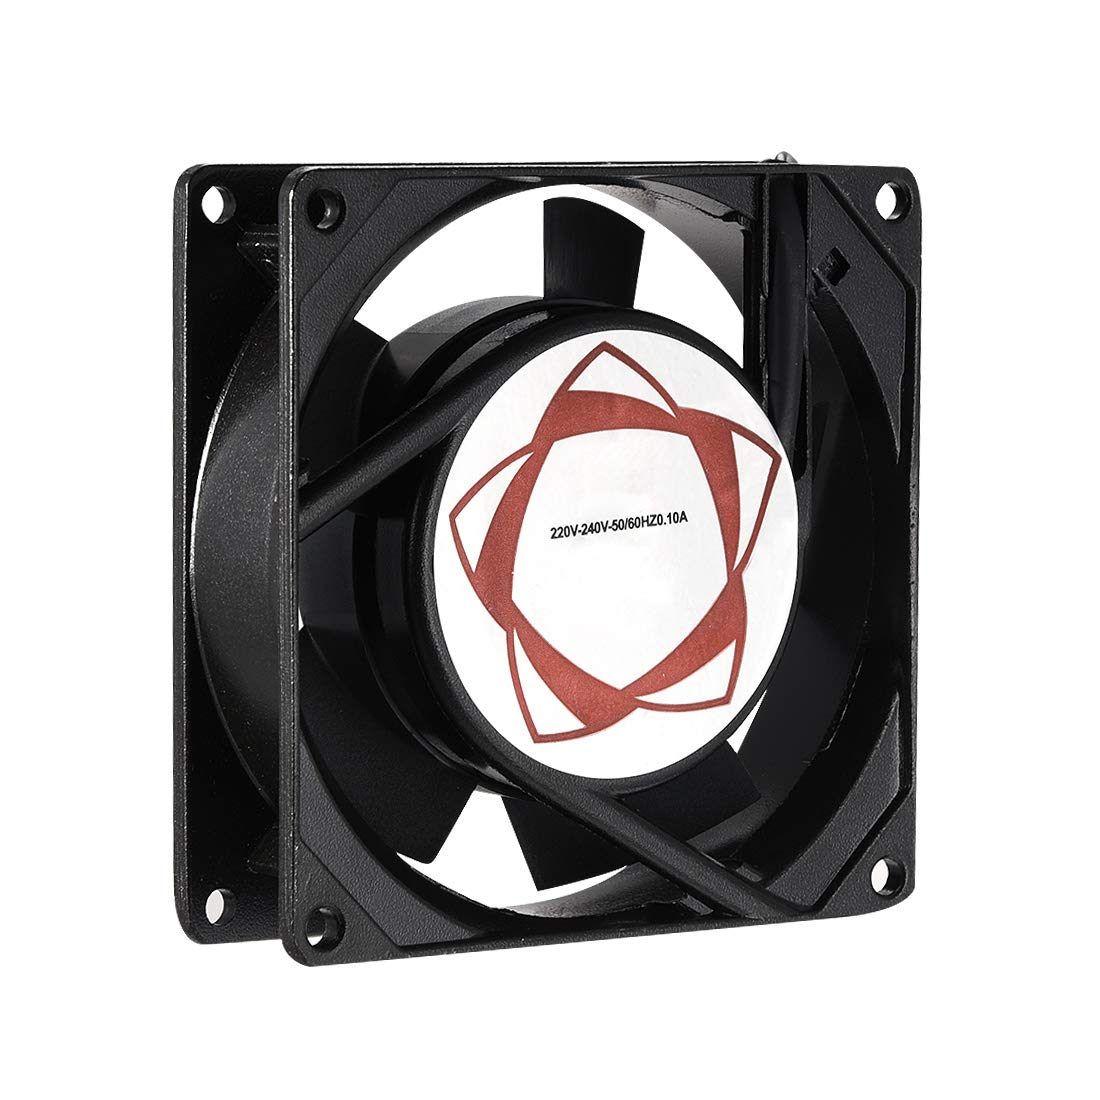 uxcell Cooling Fan 92mm x 92mm x 25mm SF9025AT AC 220V/240V 0.10A Dual Ball Bearings